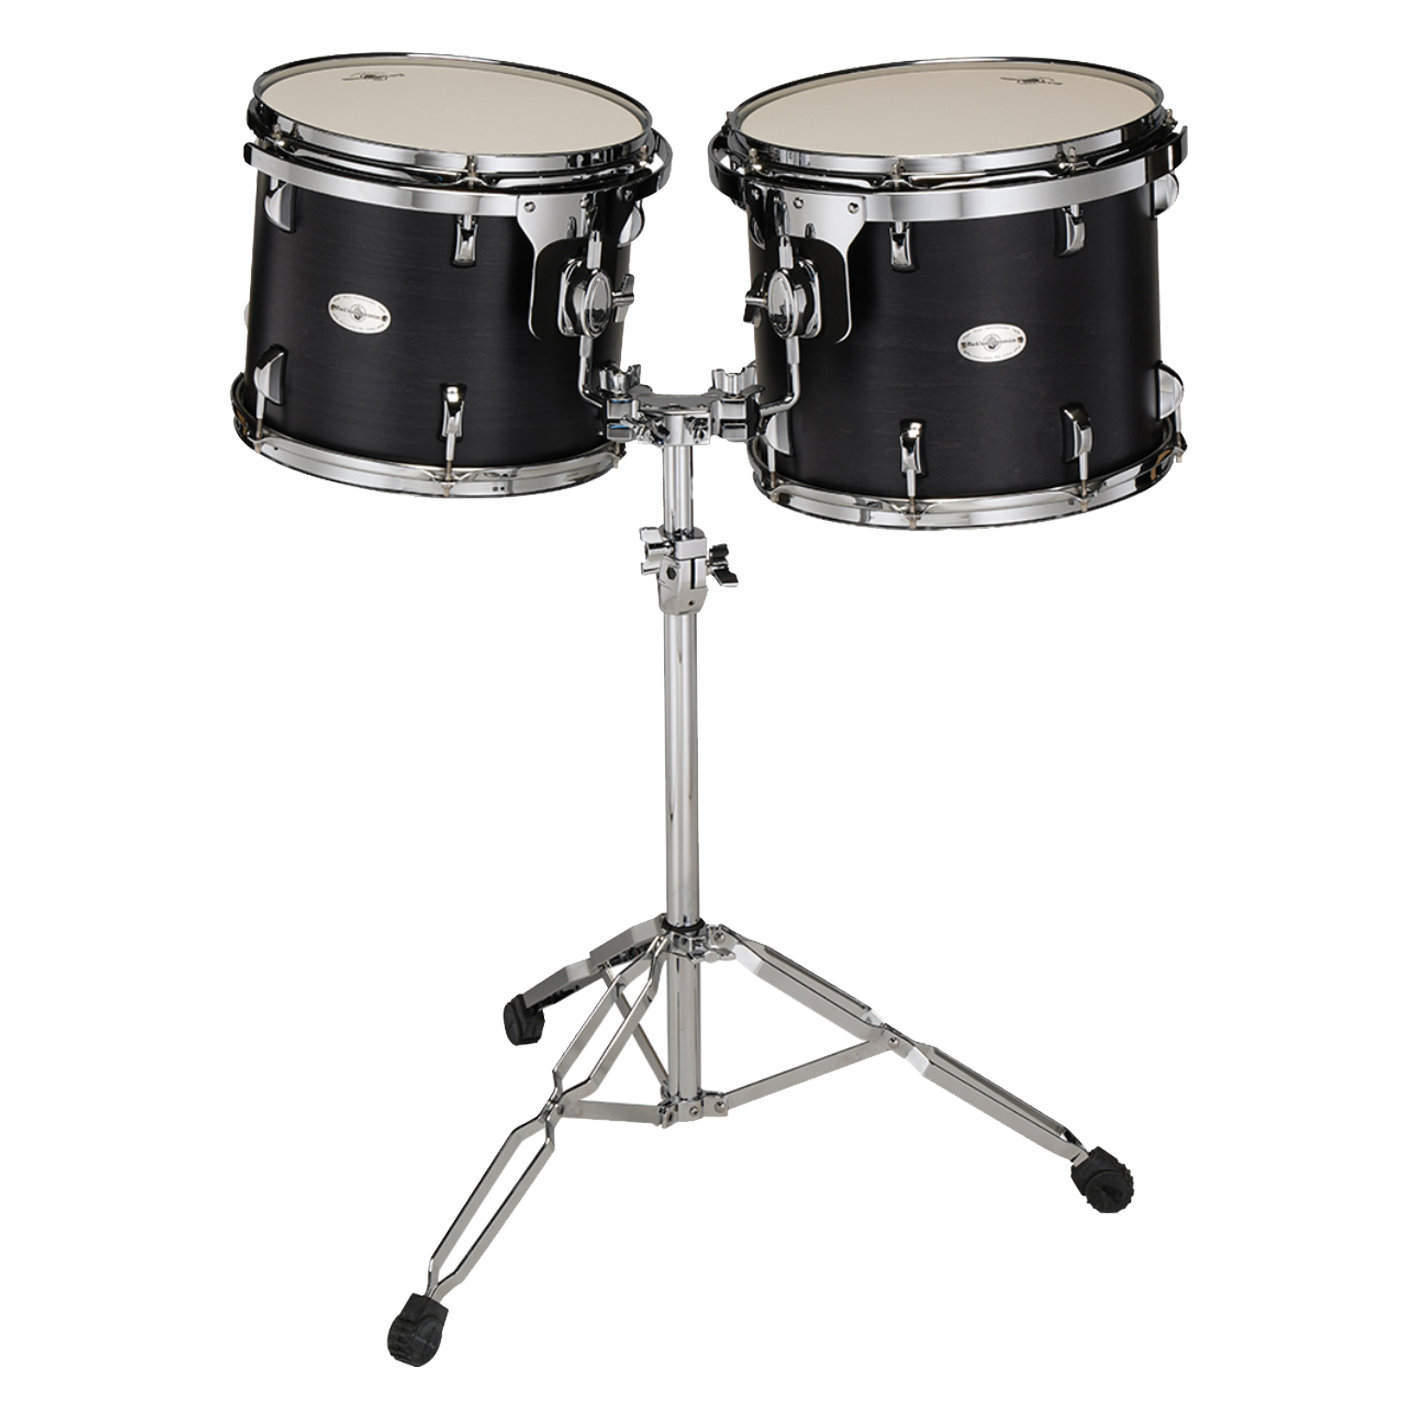 "Black Swamp - 13"" and 14"" Concert Toms Set with Stand-Percussion Accessories-Black Swamp-Music Elements"